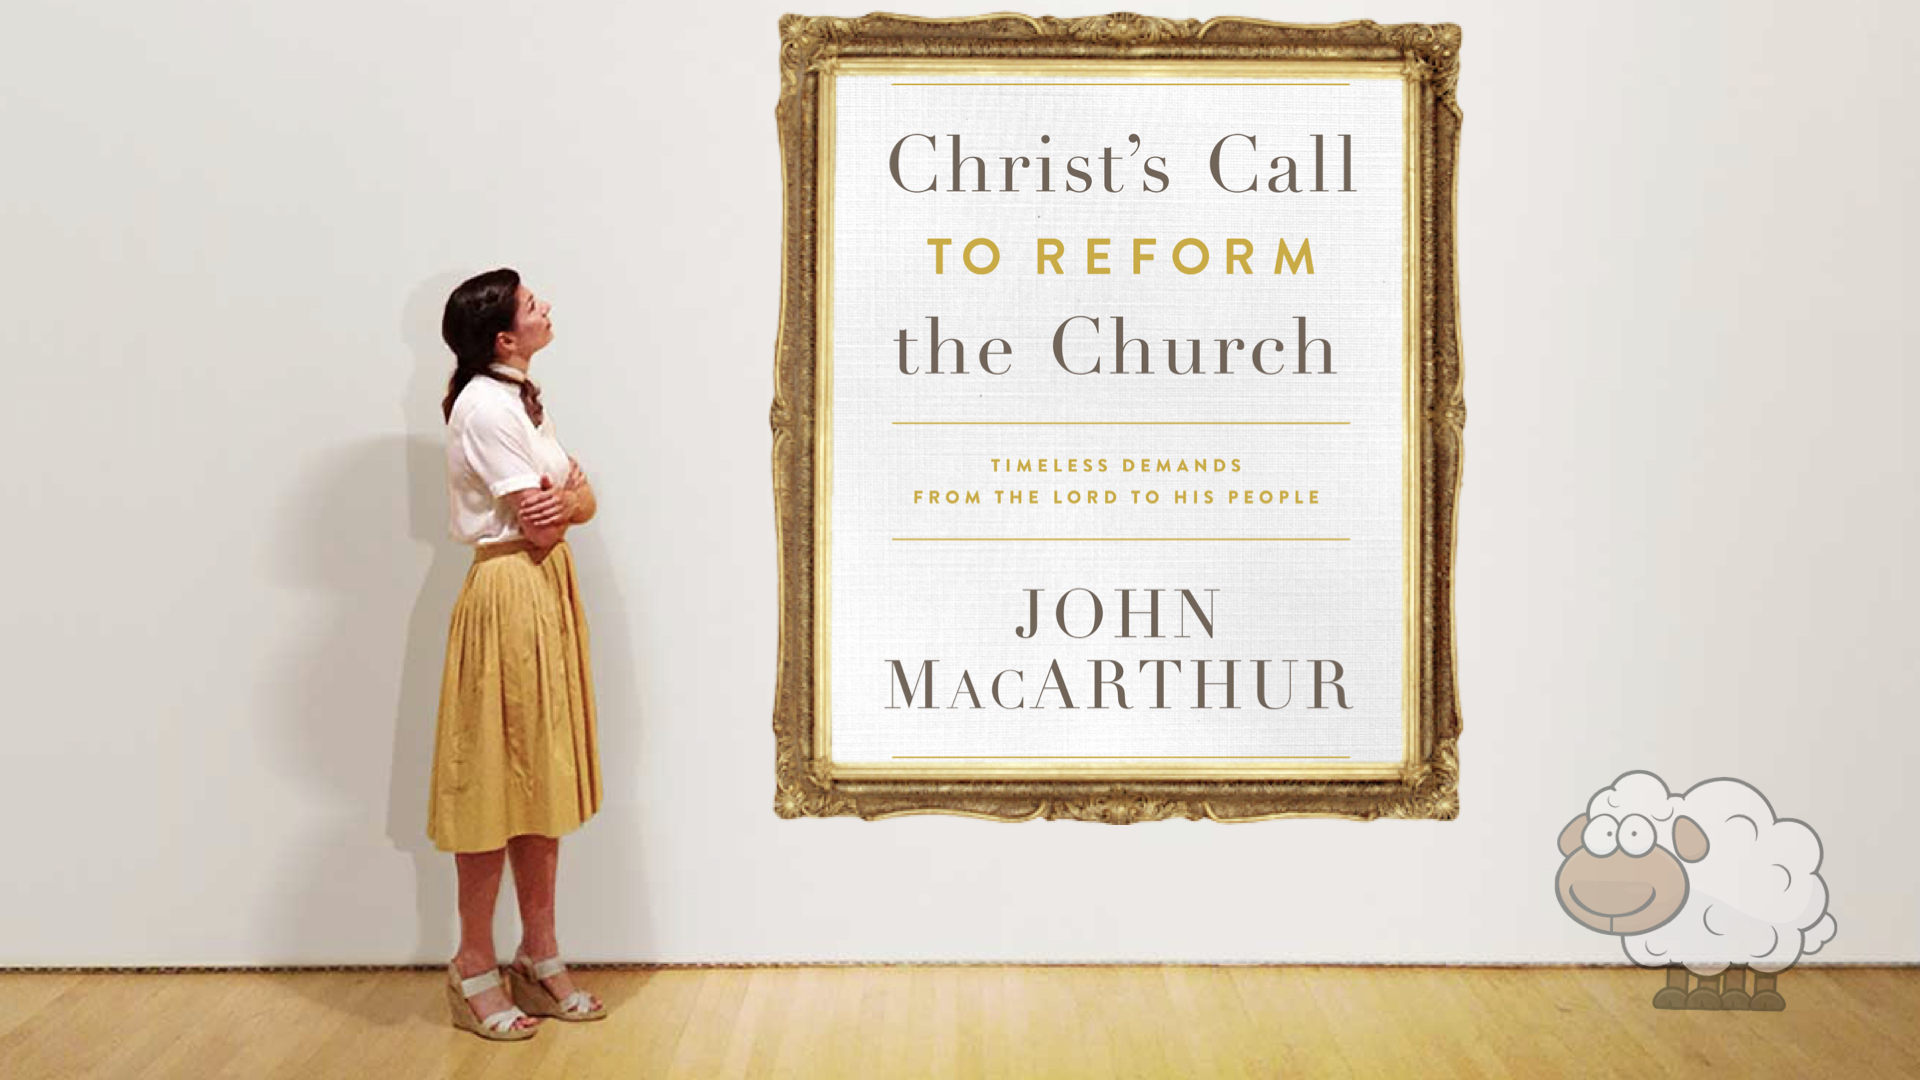 John MacArthur.   Christ's Call to Reform the Church: Timeless Demands from the Lord to His People   .  Chicago, IL: Moody Publishers, 2018, 199 pp. $24.67.